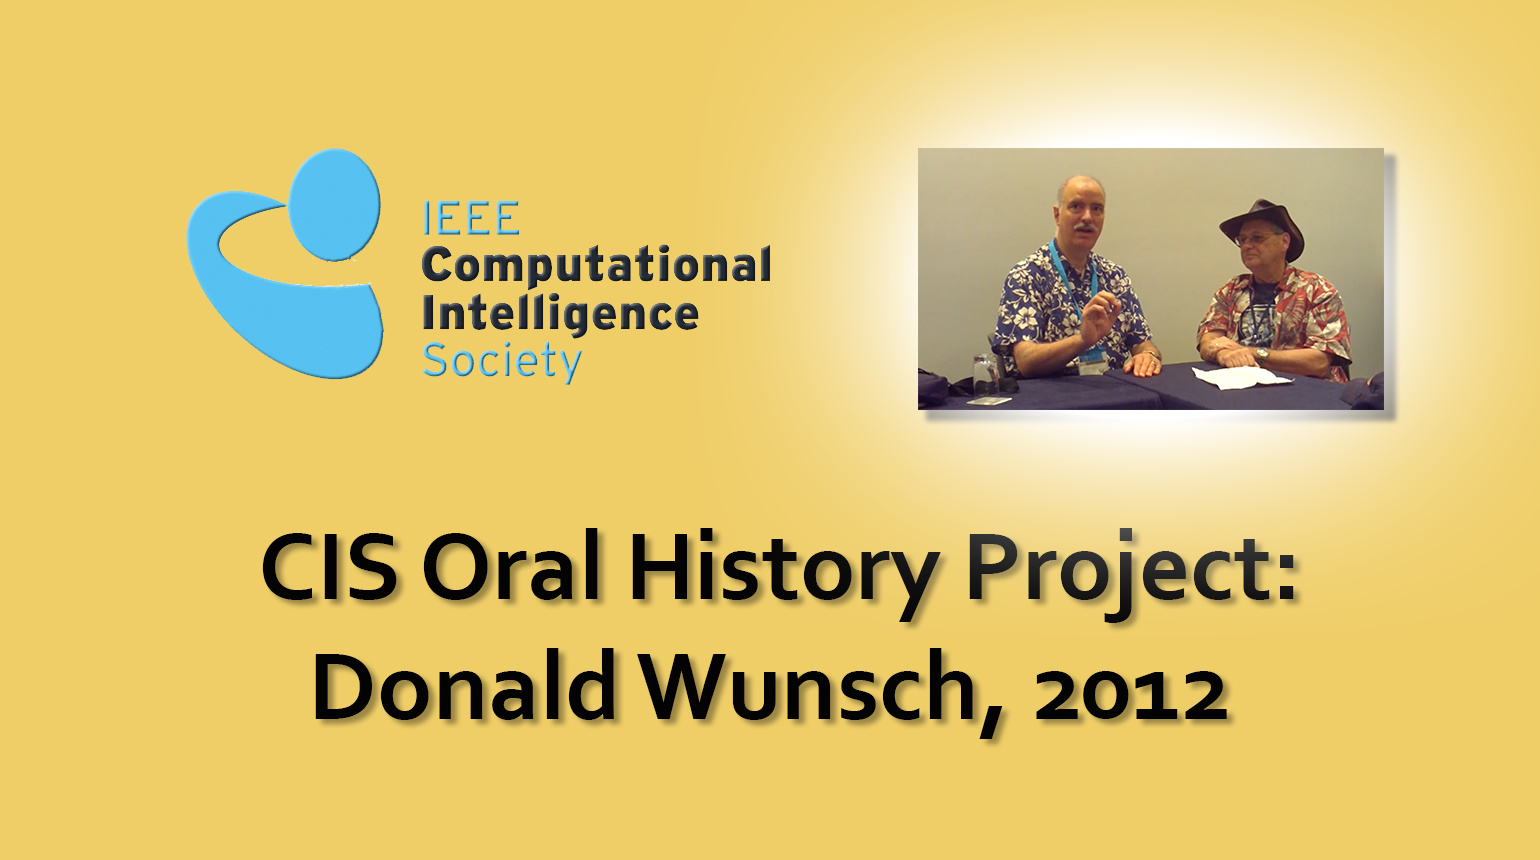 Interview with Donald Wunsch, 2012: CIS Oral History Project